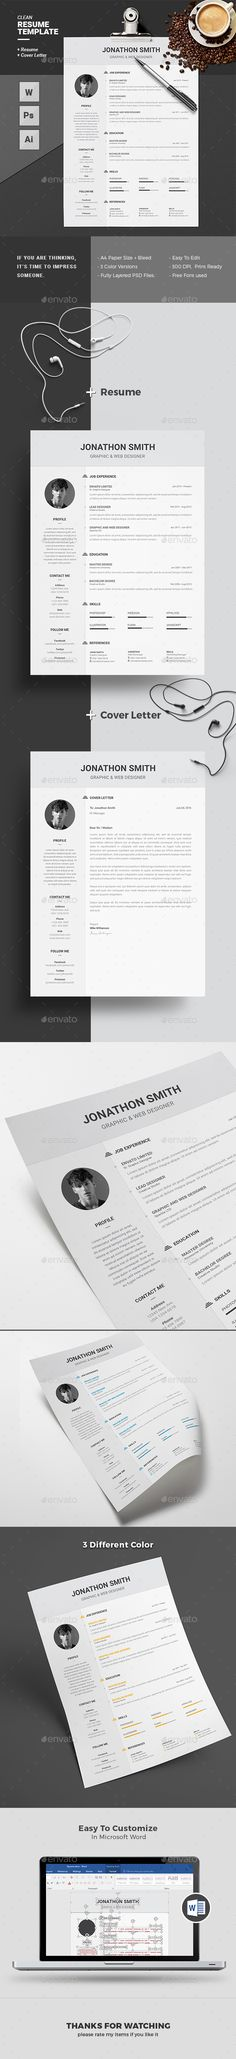 Resume Template PSD, Vector EPS, AI Illustrator, MS Word